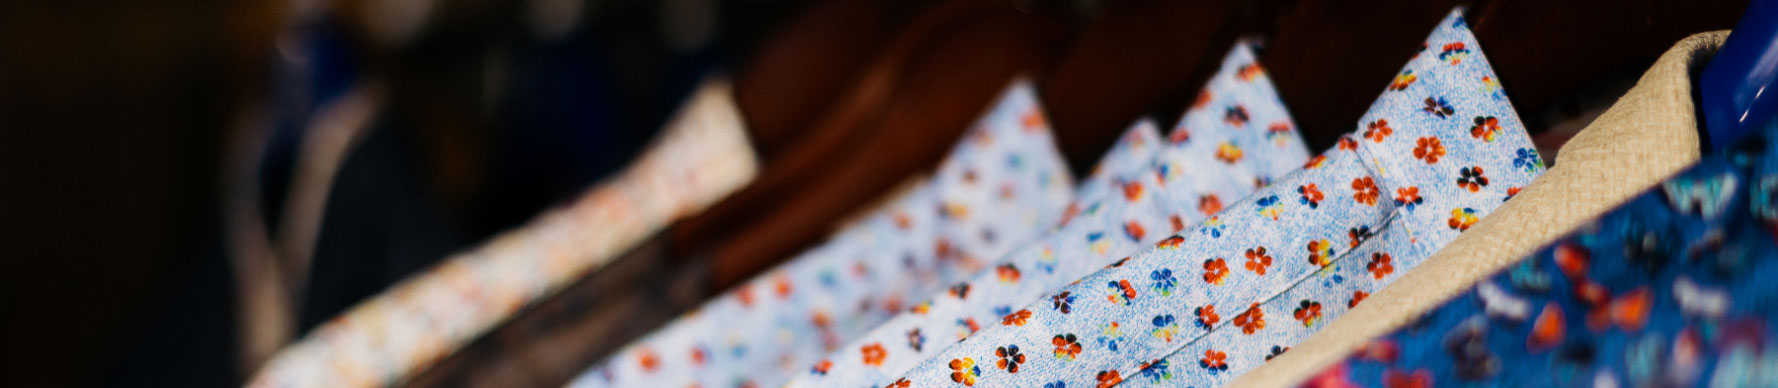 A rack of fun and vibrant dress shirts from designer brands.